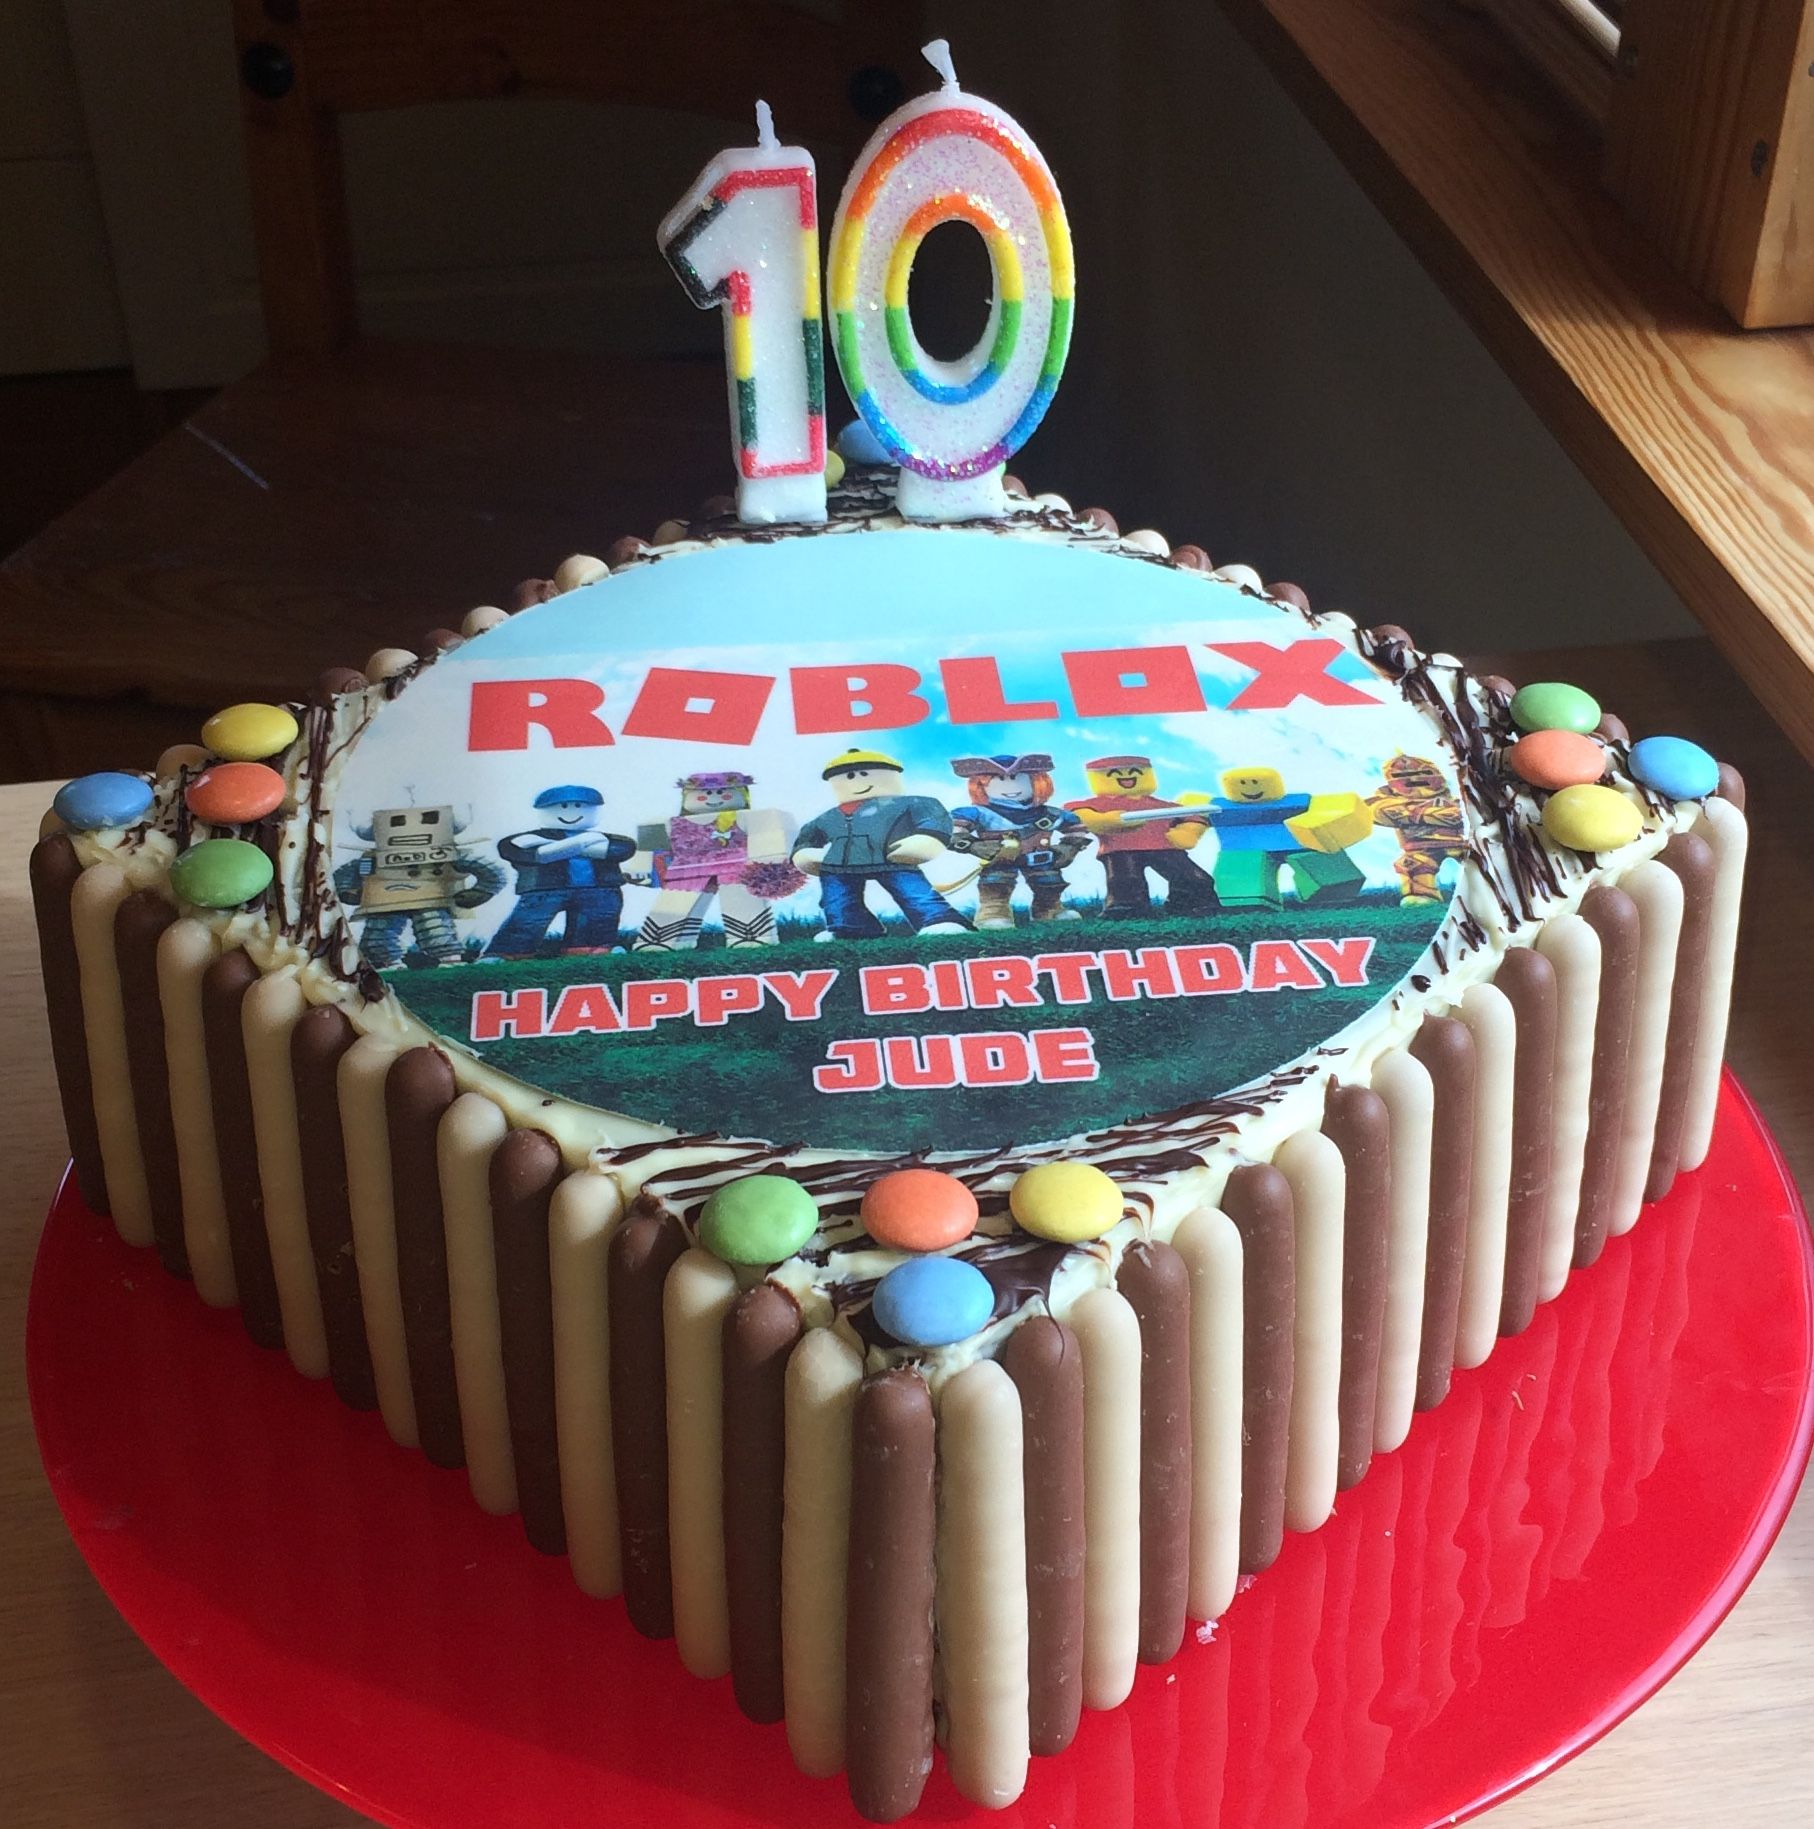 Roblox Birthday Cake For My 10 Year Old Son Roblox Birthday Cake Boy Birthday Cake Cool Birthday Cakes